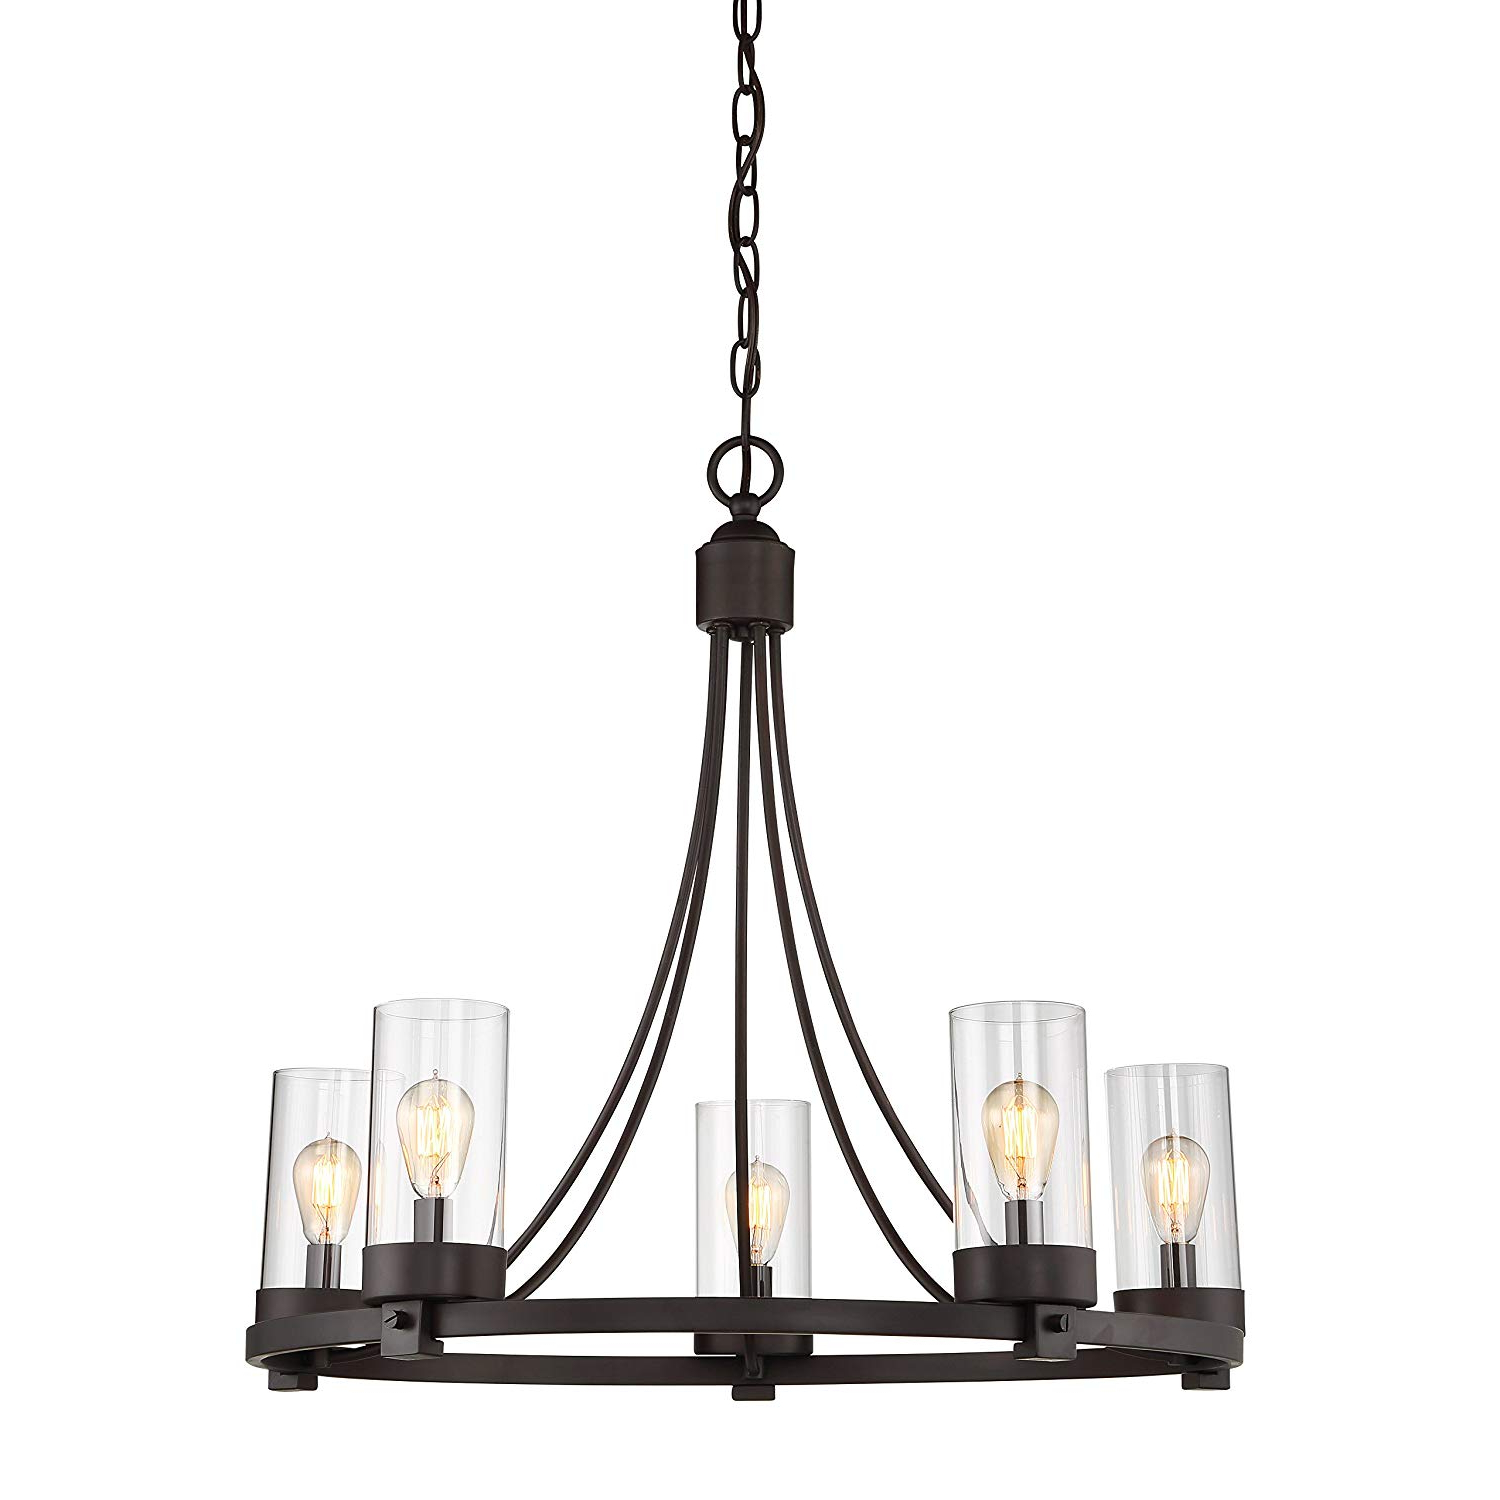 Agave Oil Rubbed Bronze 5 Light Candle Style Chandelier Intended For 2019 Giverny 9 Light Candle Style Chandeliers (View 10 of 25)